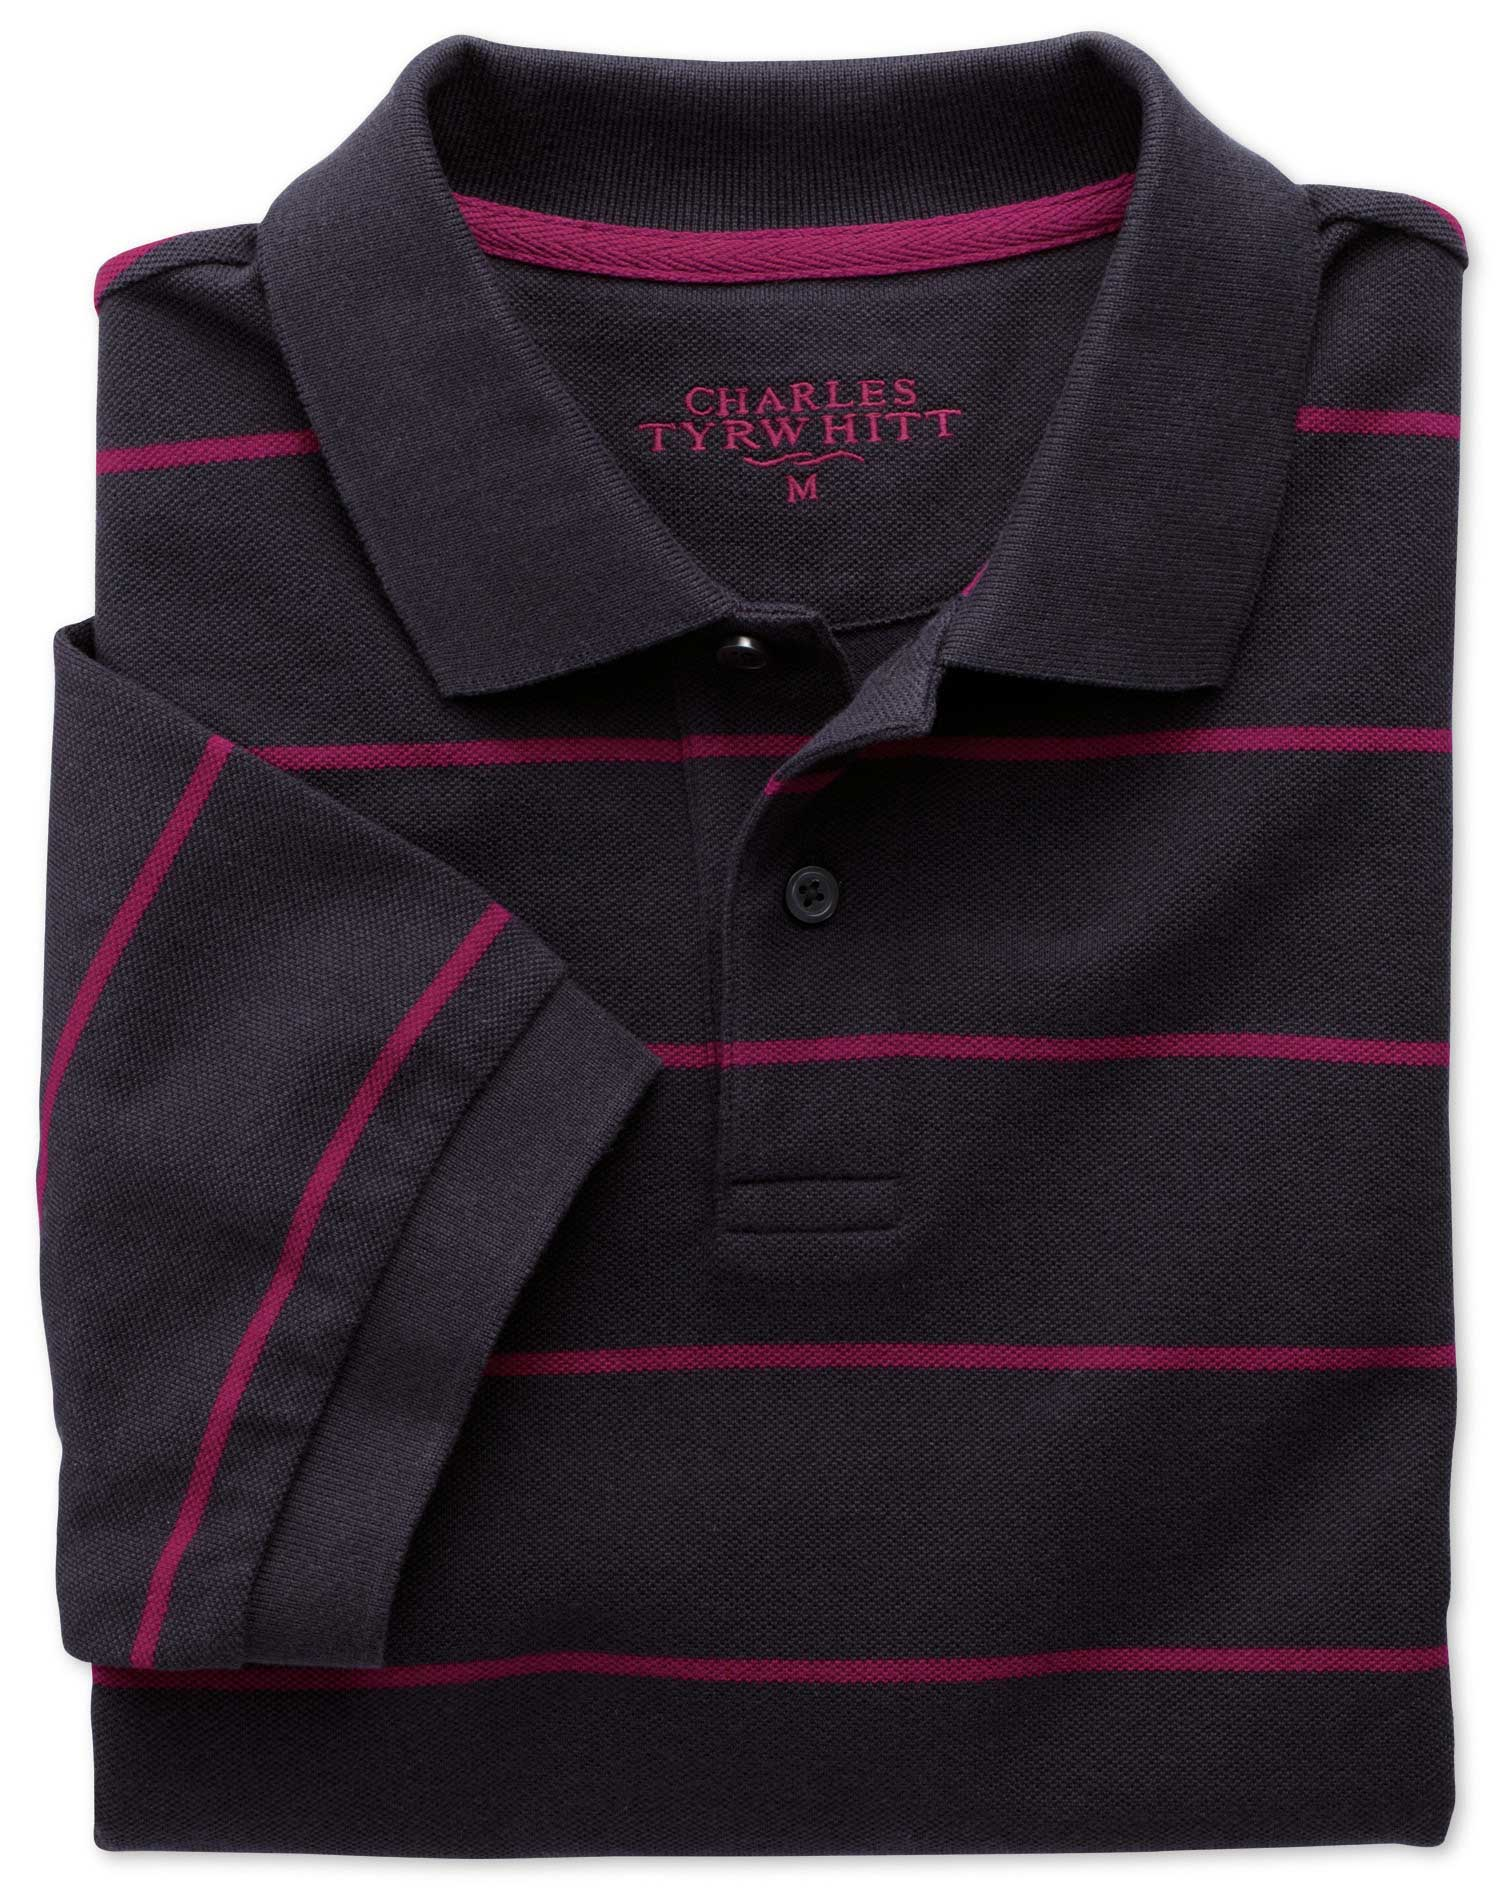 Navy and Berry Stripe Pique Cotton Polo Size Small by Charles Tyrwhitt